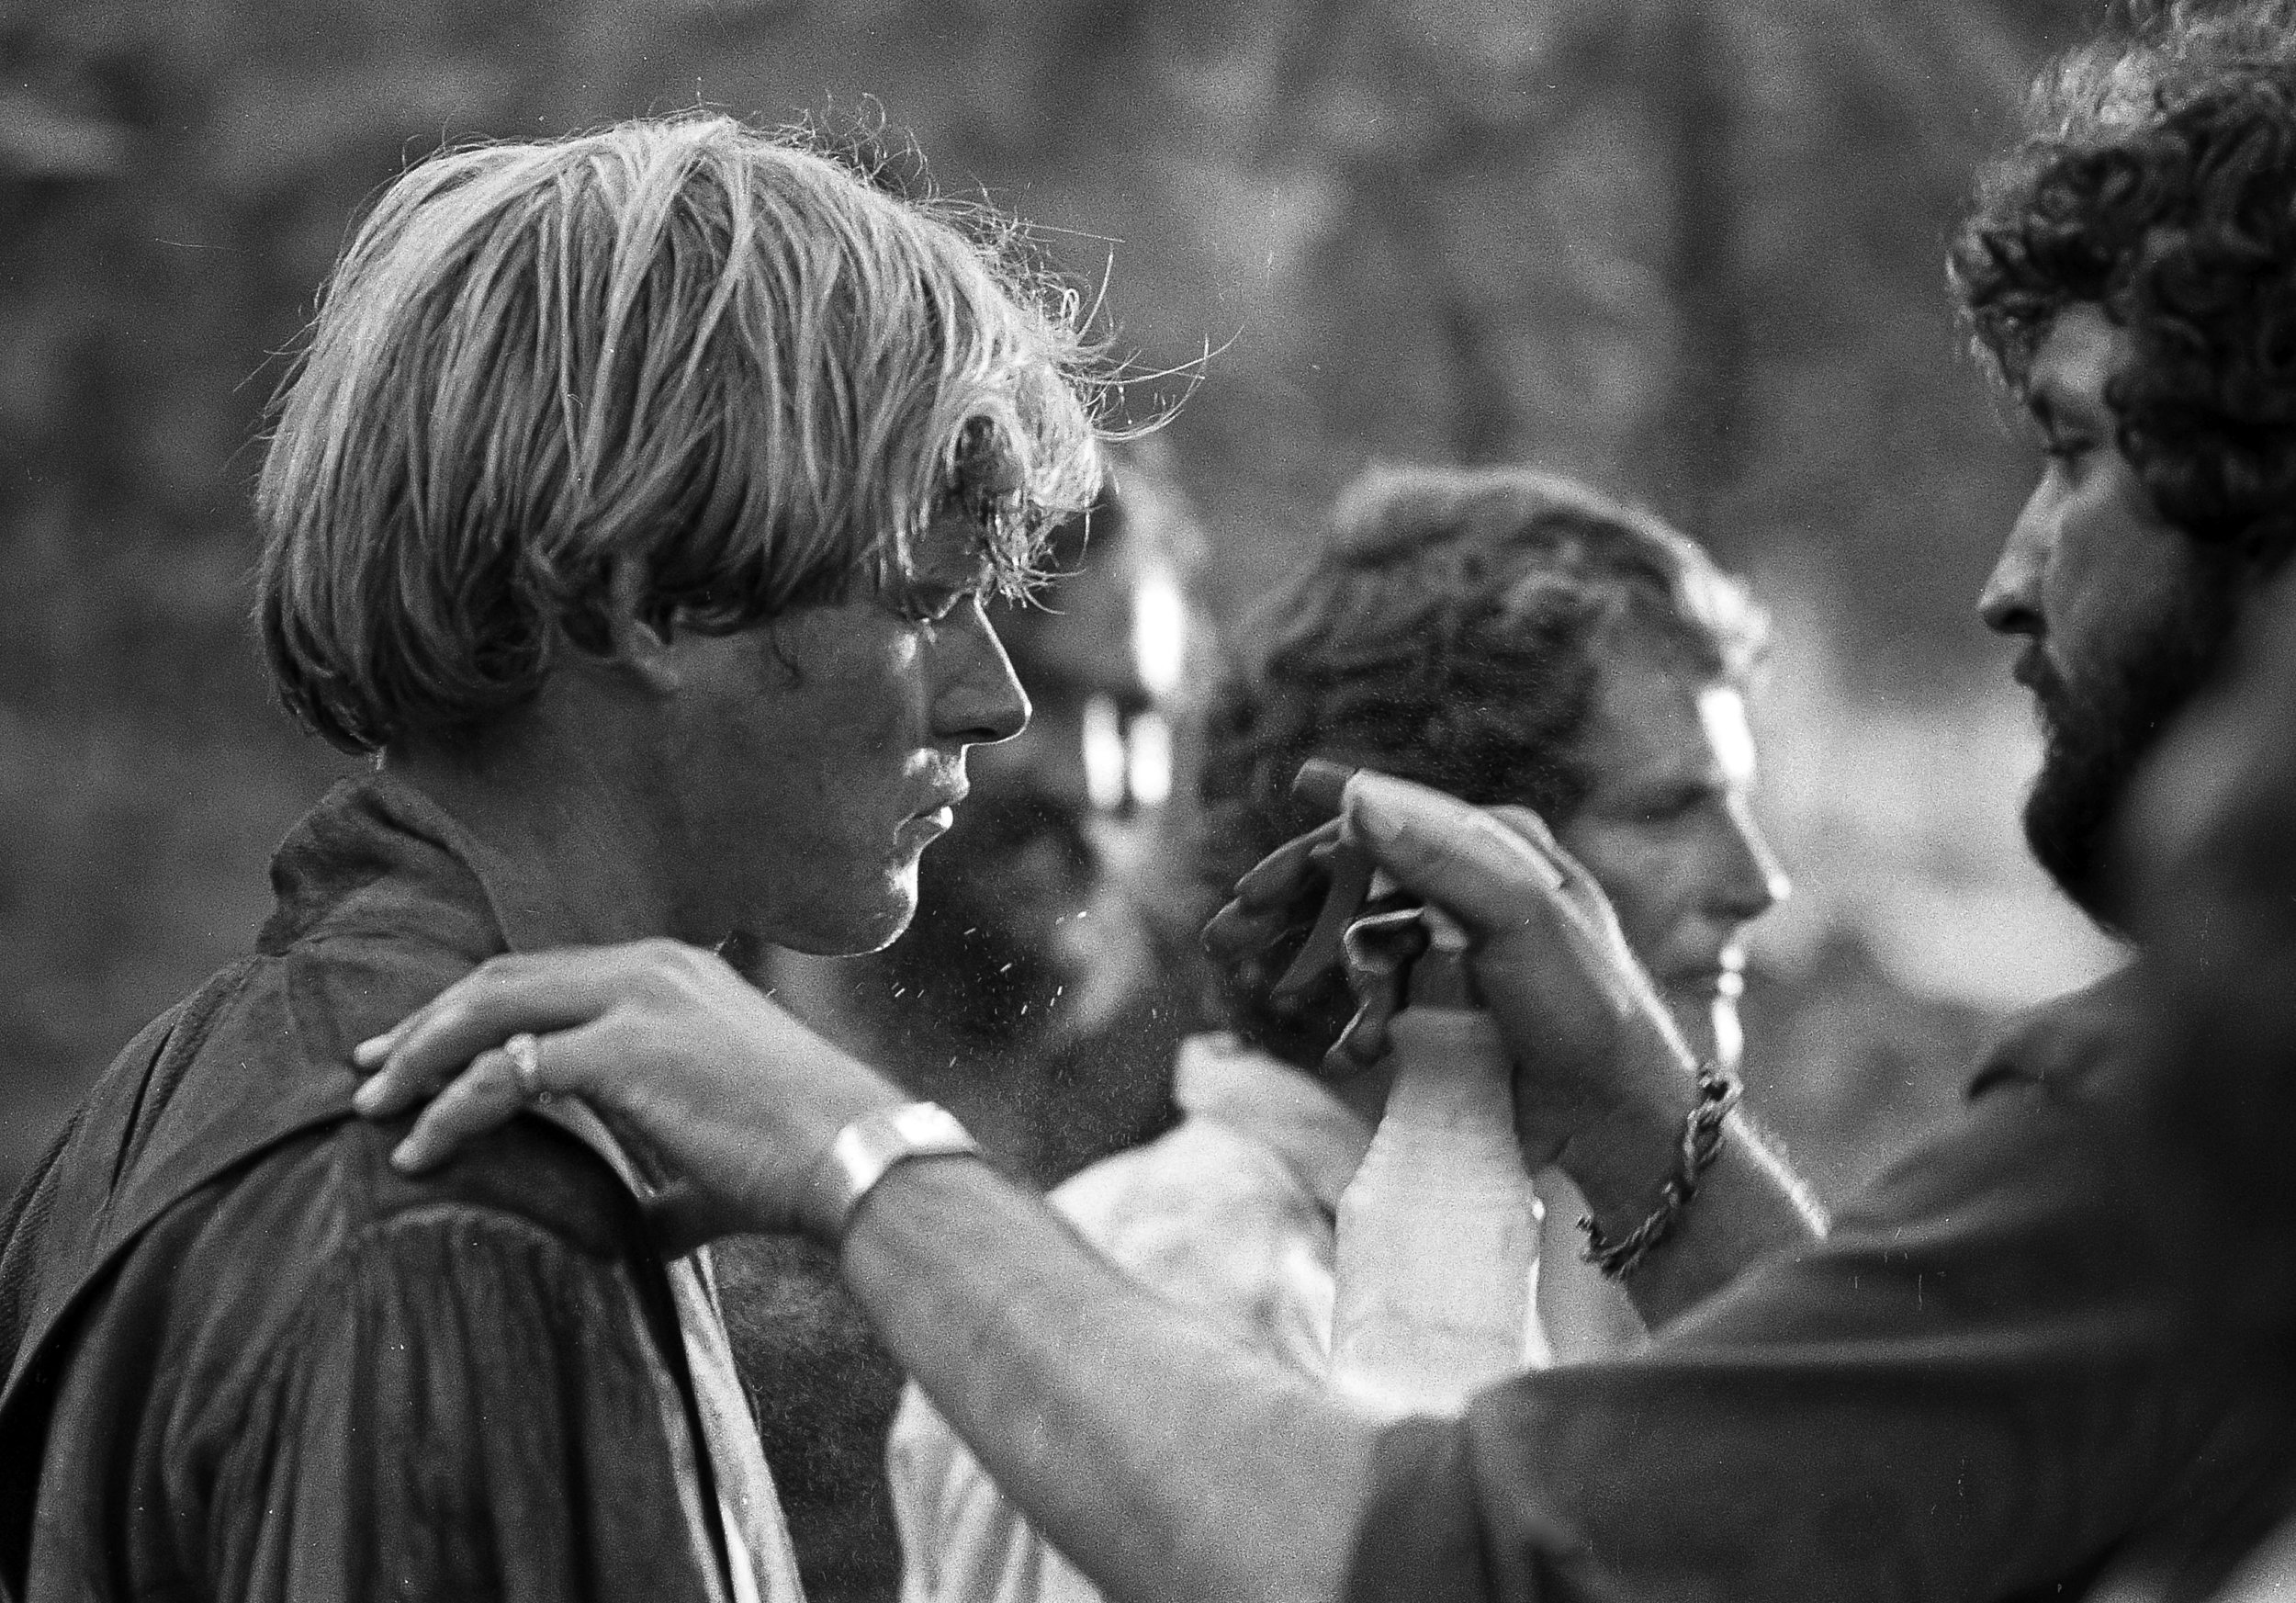 """Brian Kerwin, who plays Gideon Chisholm, has water sprayed on his face to look sweaty before filming a scene for the television mini series """"The Chisholms"""" at New Salem State Historic Site, October 2, 1978. Behind Kerwin is actor Ben Murphy. File/Bill Hagen/The State Journal-Register"""